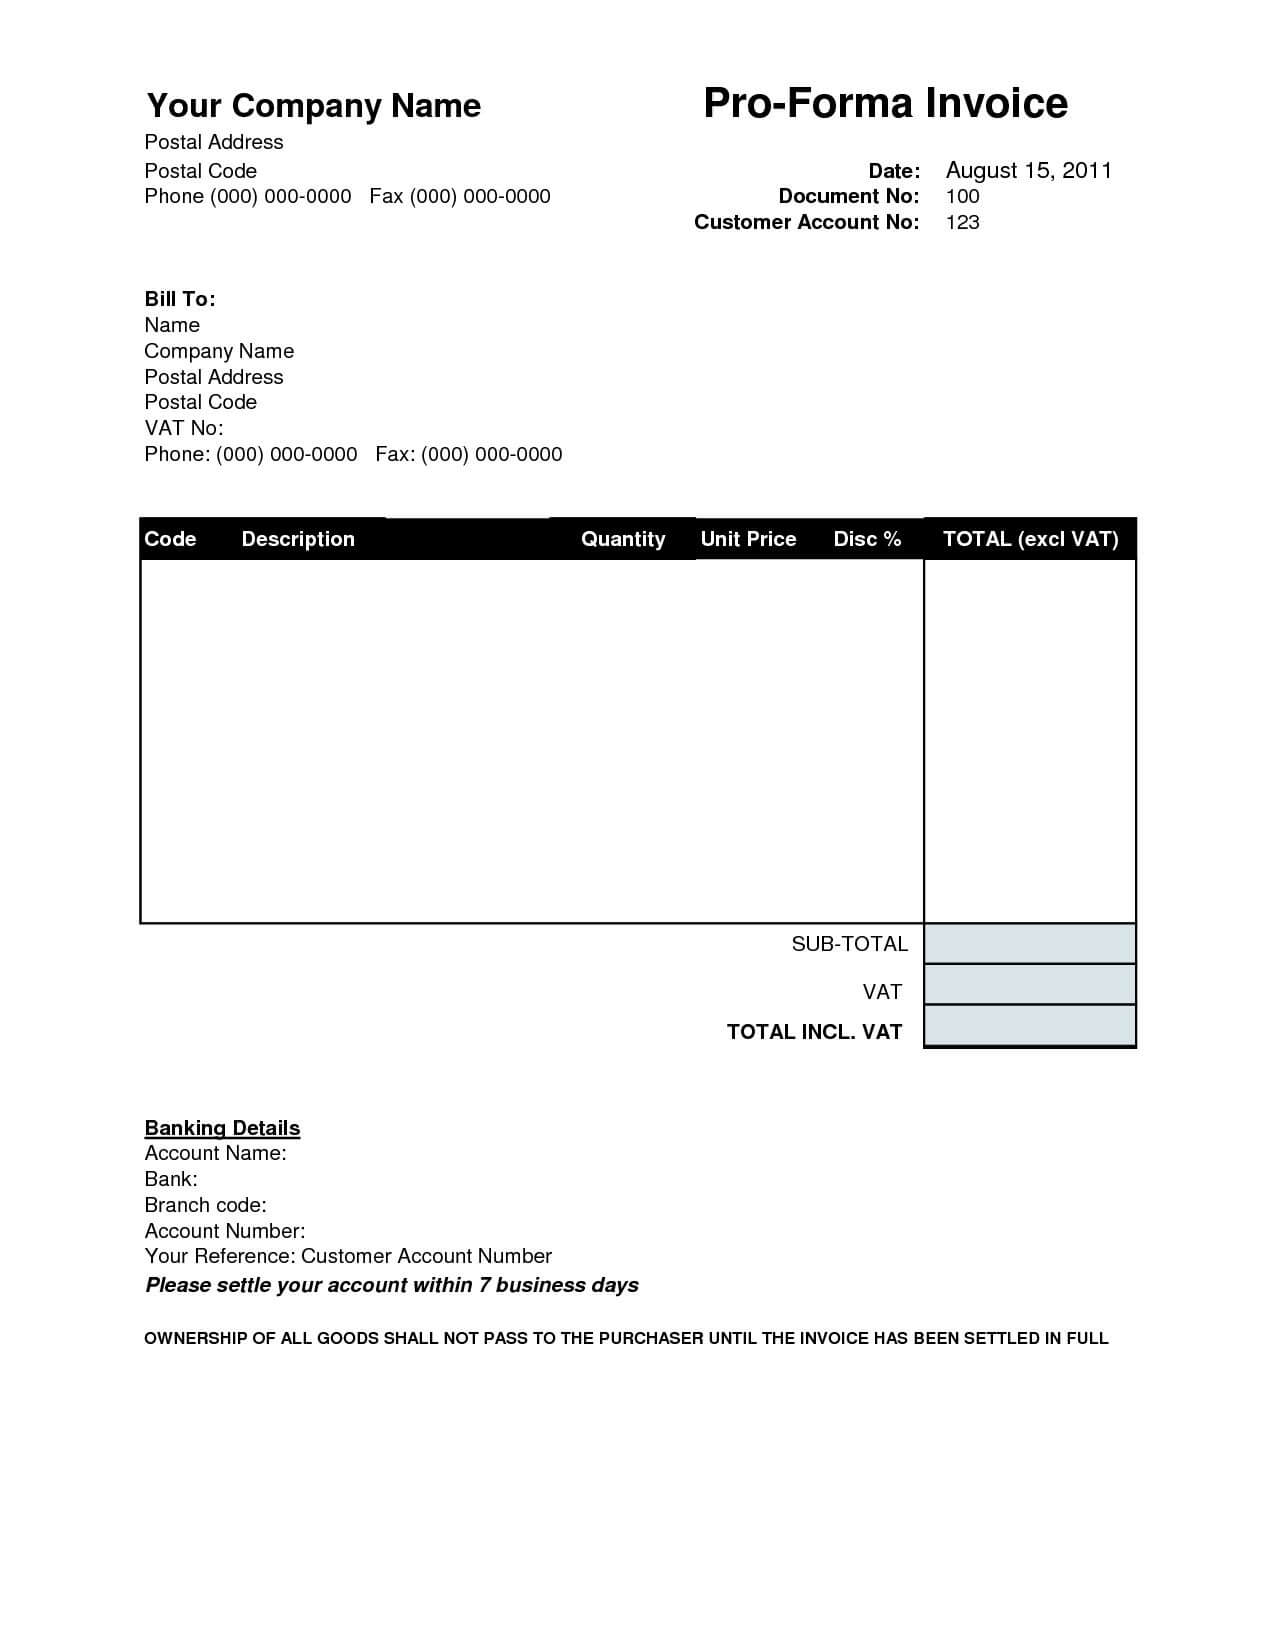 Proforma Invoice Sample Invoice Template Ideas Performa With Regard To Free Proforma Invoice Template Word